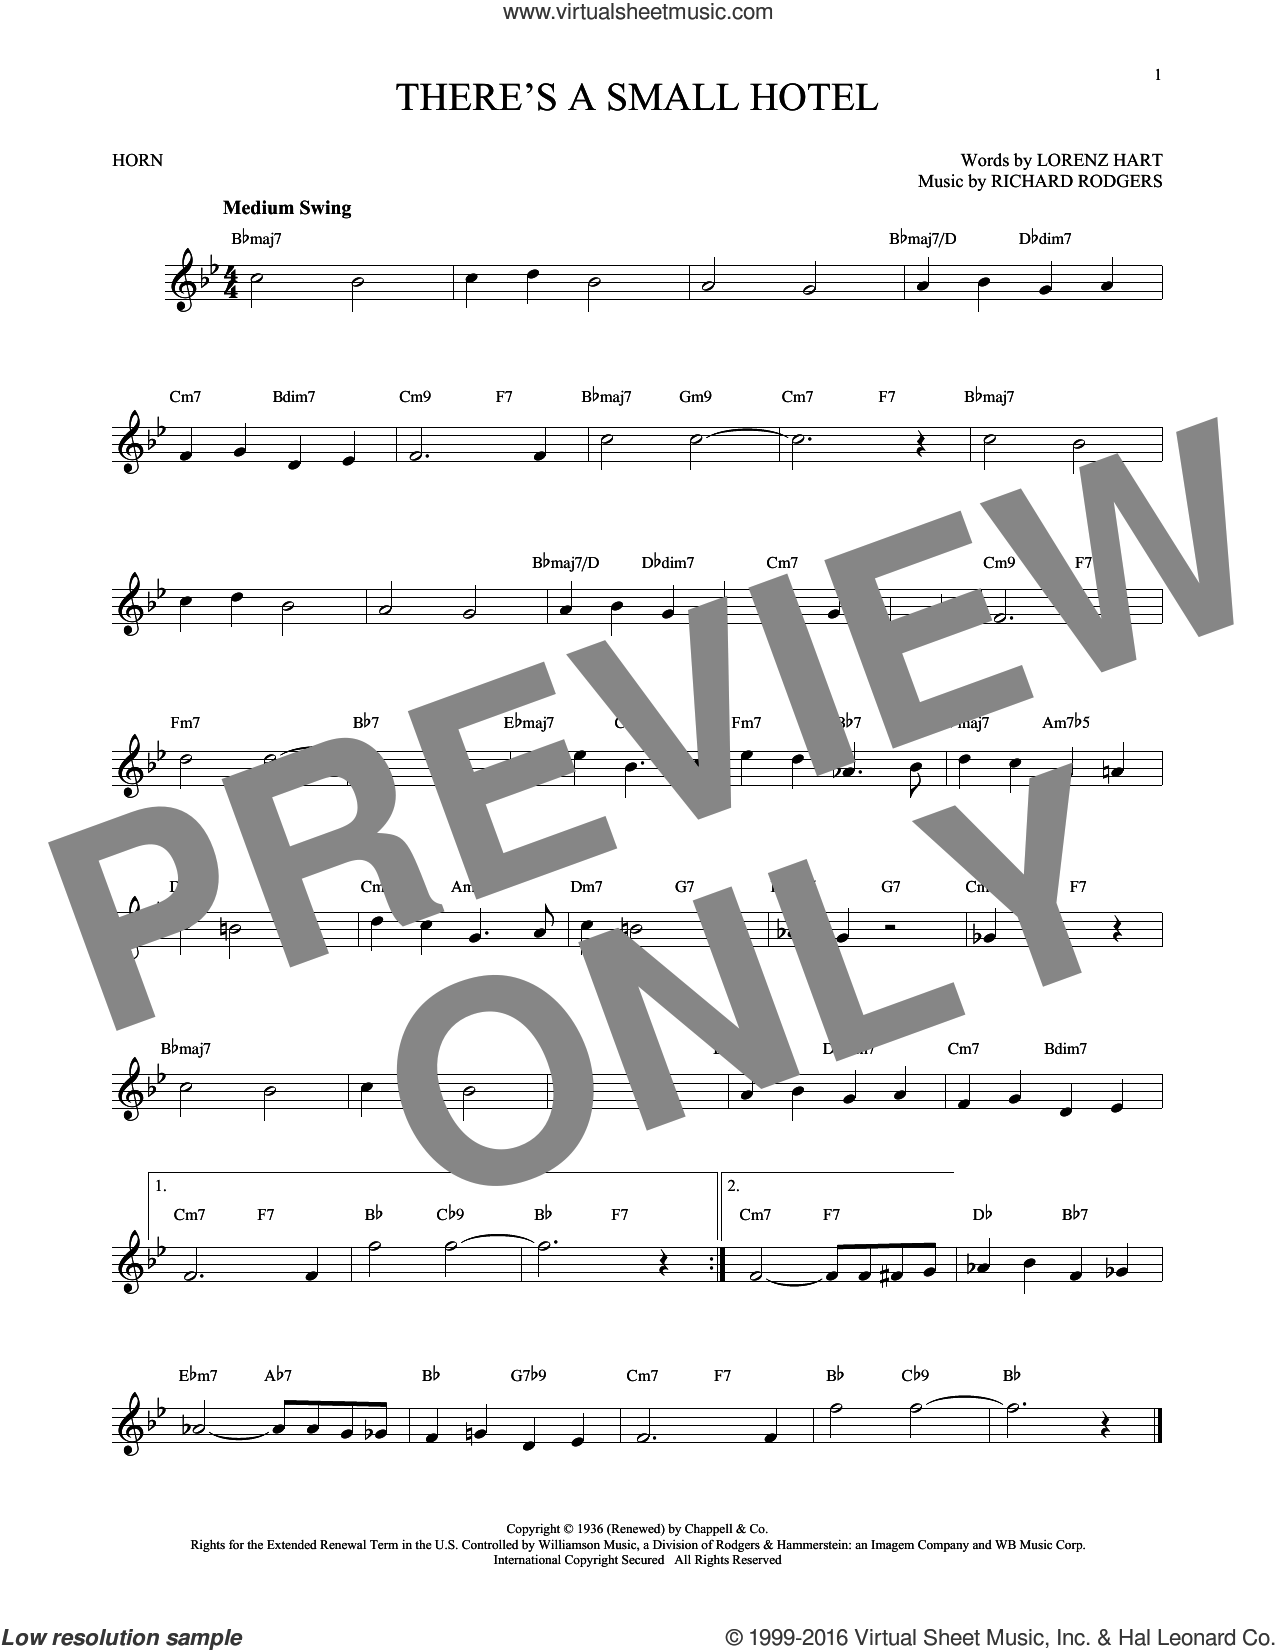 There's A Small Hotel sheet music for horn solo by Rodgers & Hart, Charlie Byrd, Ruby Braff, Sammy Davis, Jr., Lorenz Hart and Richard Rodgers, intermediate skill level